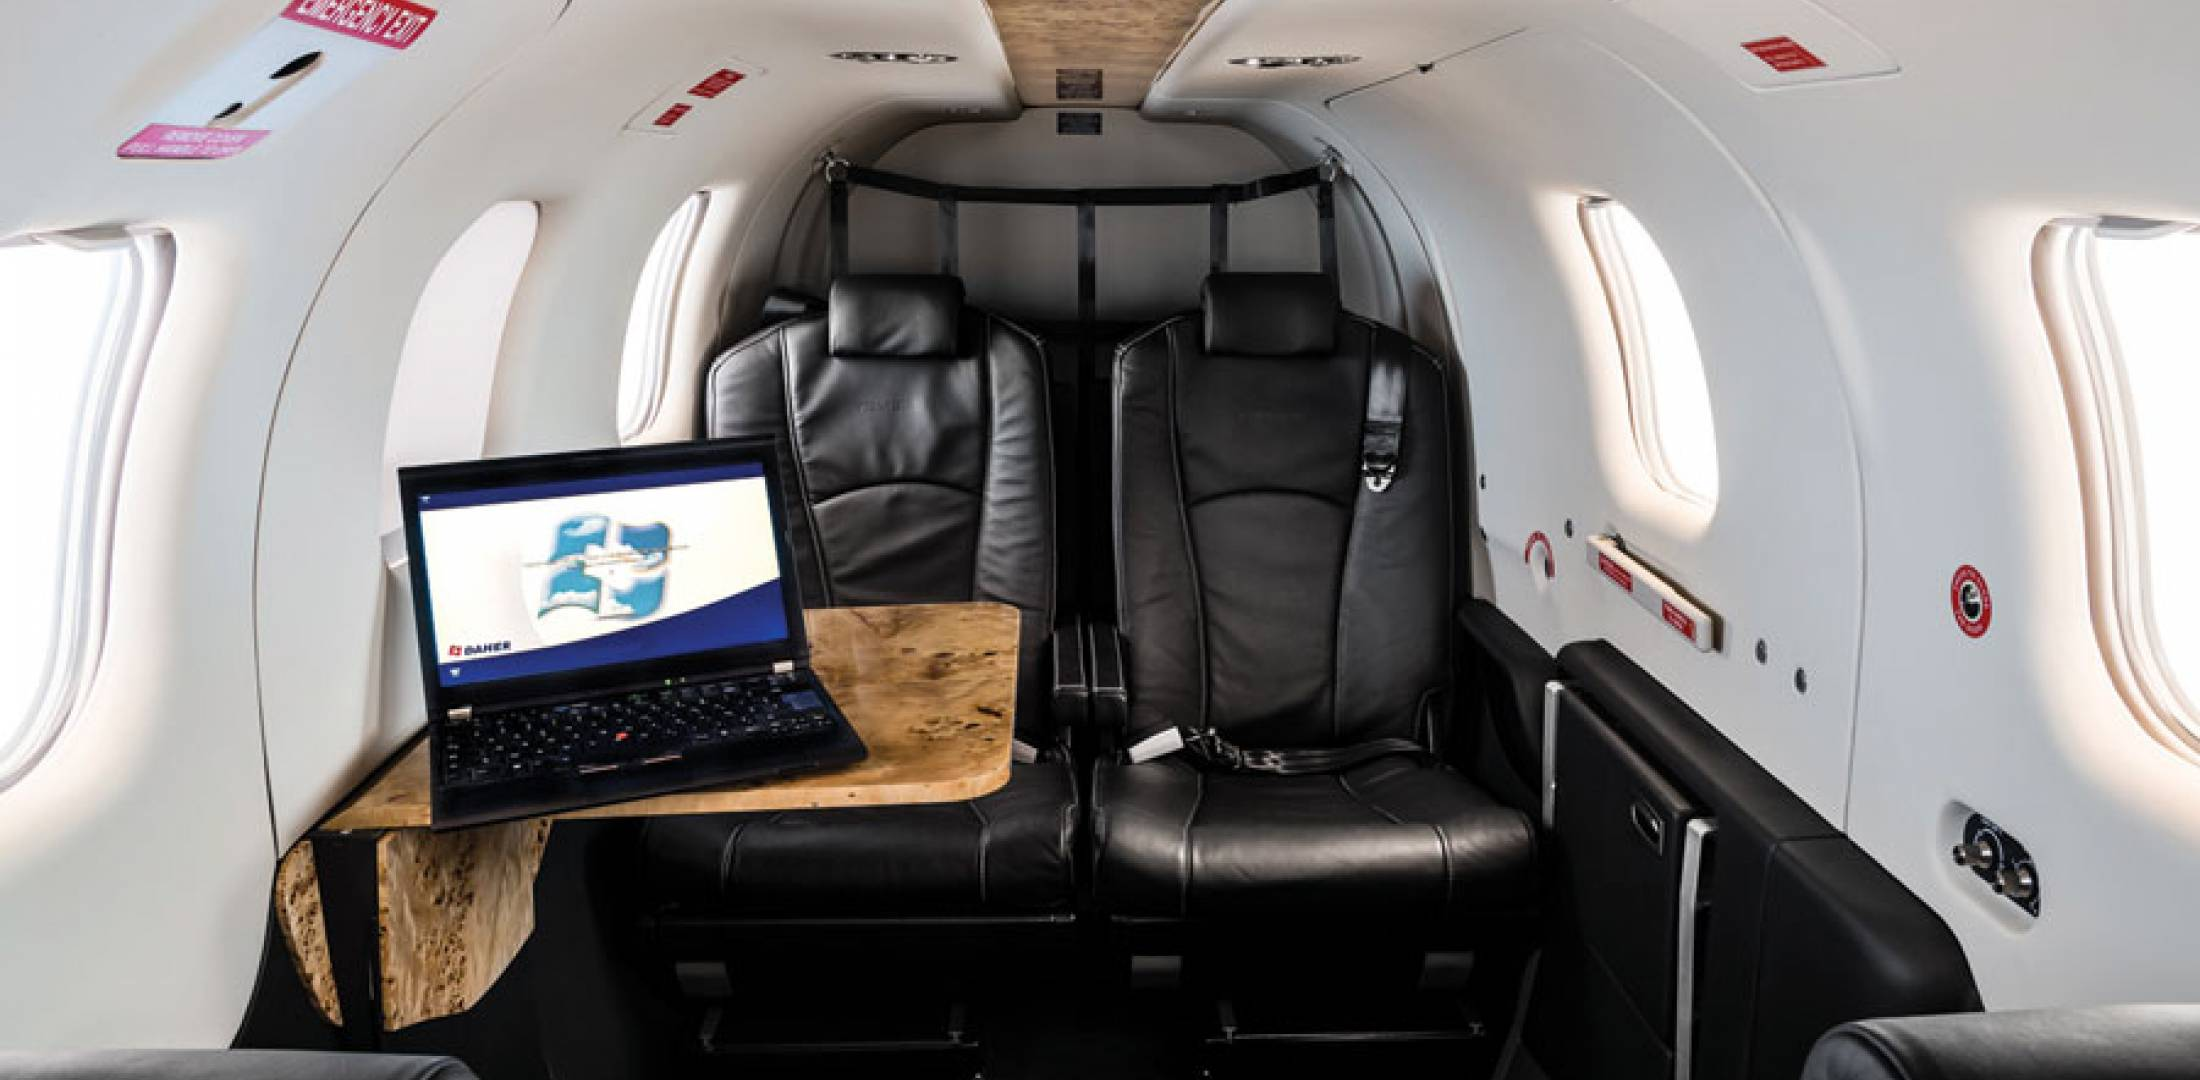 The 2013 edition of the TBM 850 Elite features a special cabin equipment package and a deluxe leather interior, as well as reconfigurable and removable seats. T